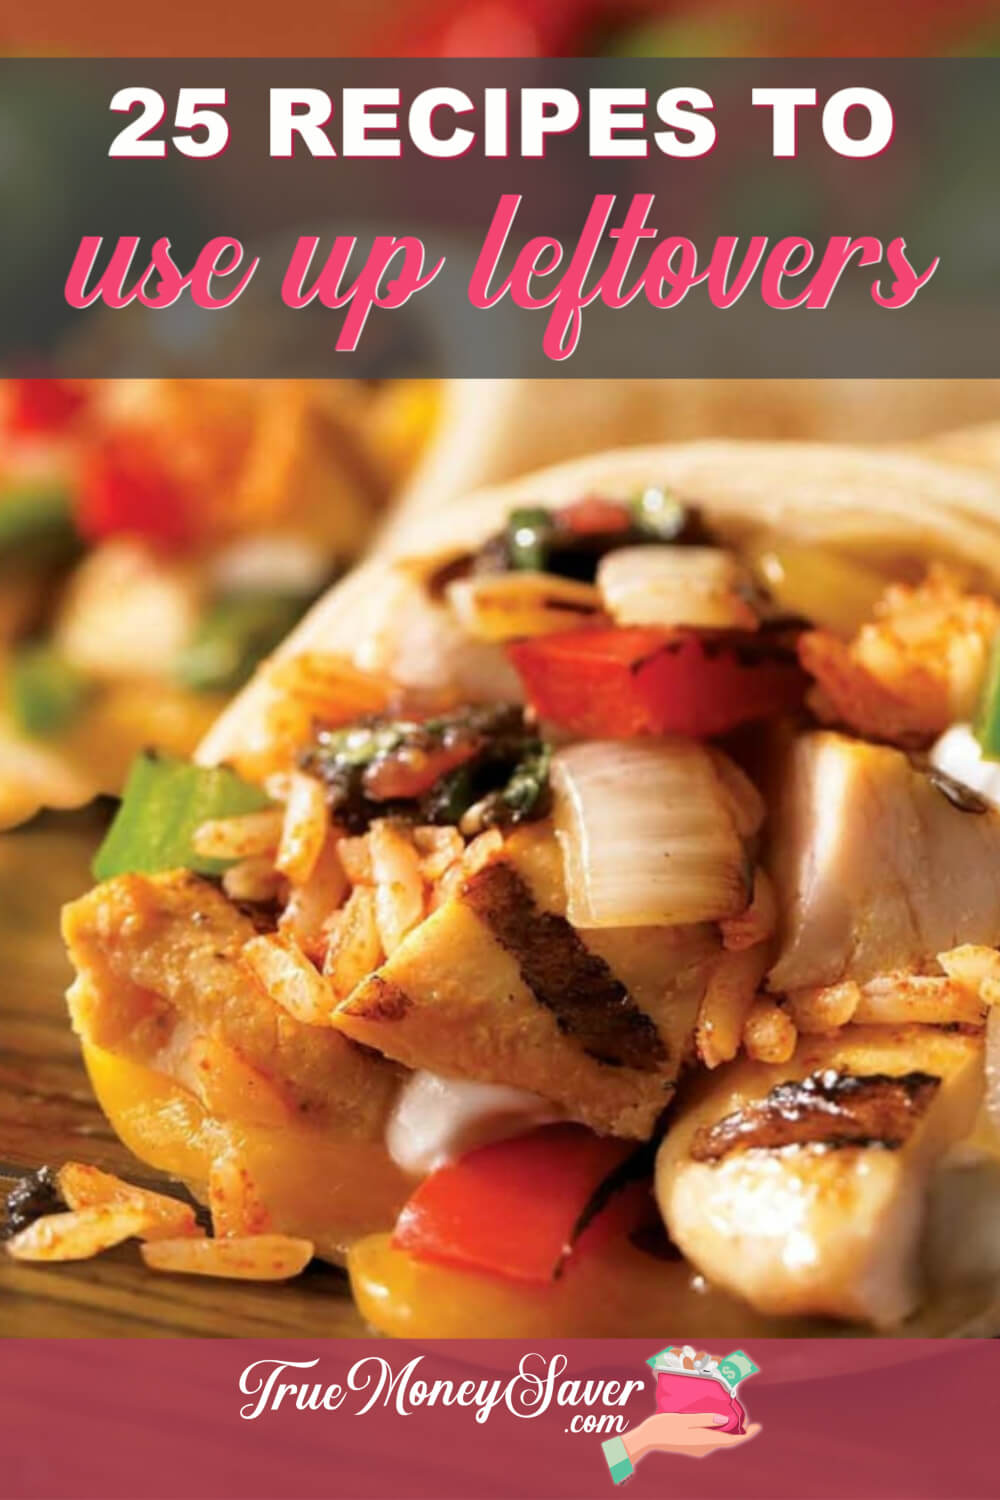 I hate leftovers! But there are recipes to use up leftovers so you don't waste them! And these easy leftover recipe ideas are just what you need to add to your meal plan! Get started with these recipe ideas! #debtfree  #savingmoney #truemoneysaver #mealplanning #mealprep #meal #mealprepping #mealprepsunday #mealplan #mealprepideas #leftovers #leftoversfordays #theleftovers #leftoversfordinner #loveyourleftovers